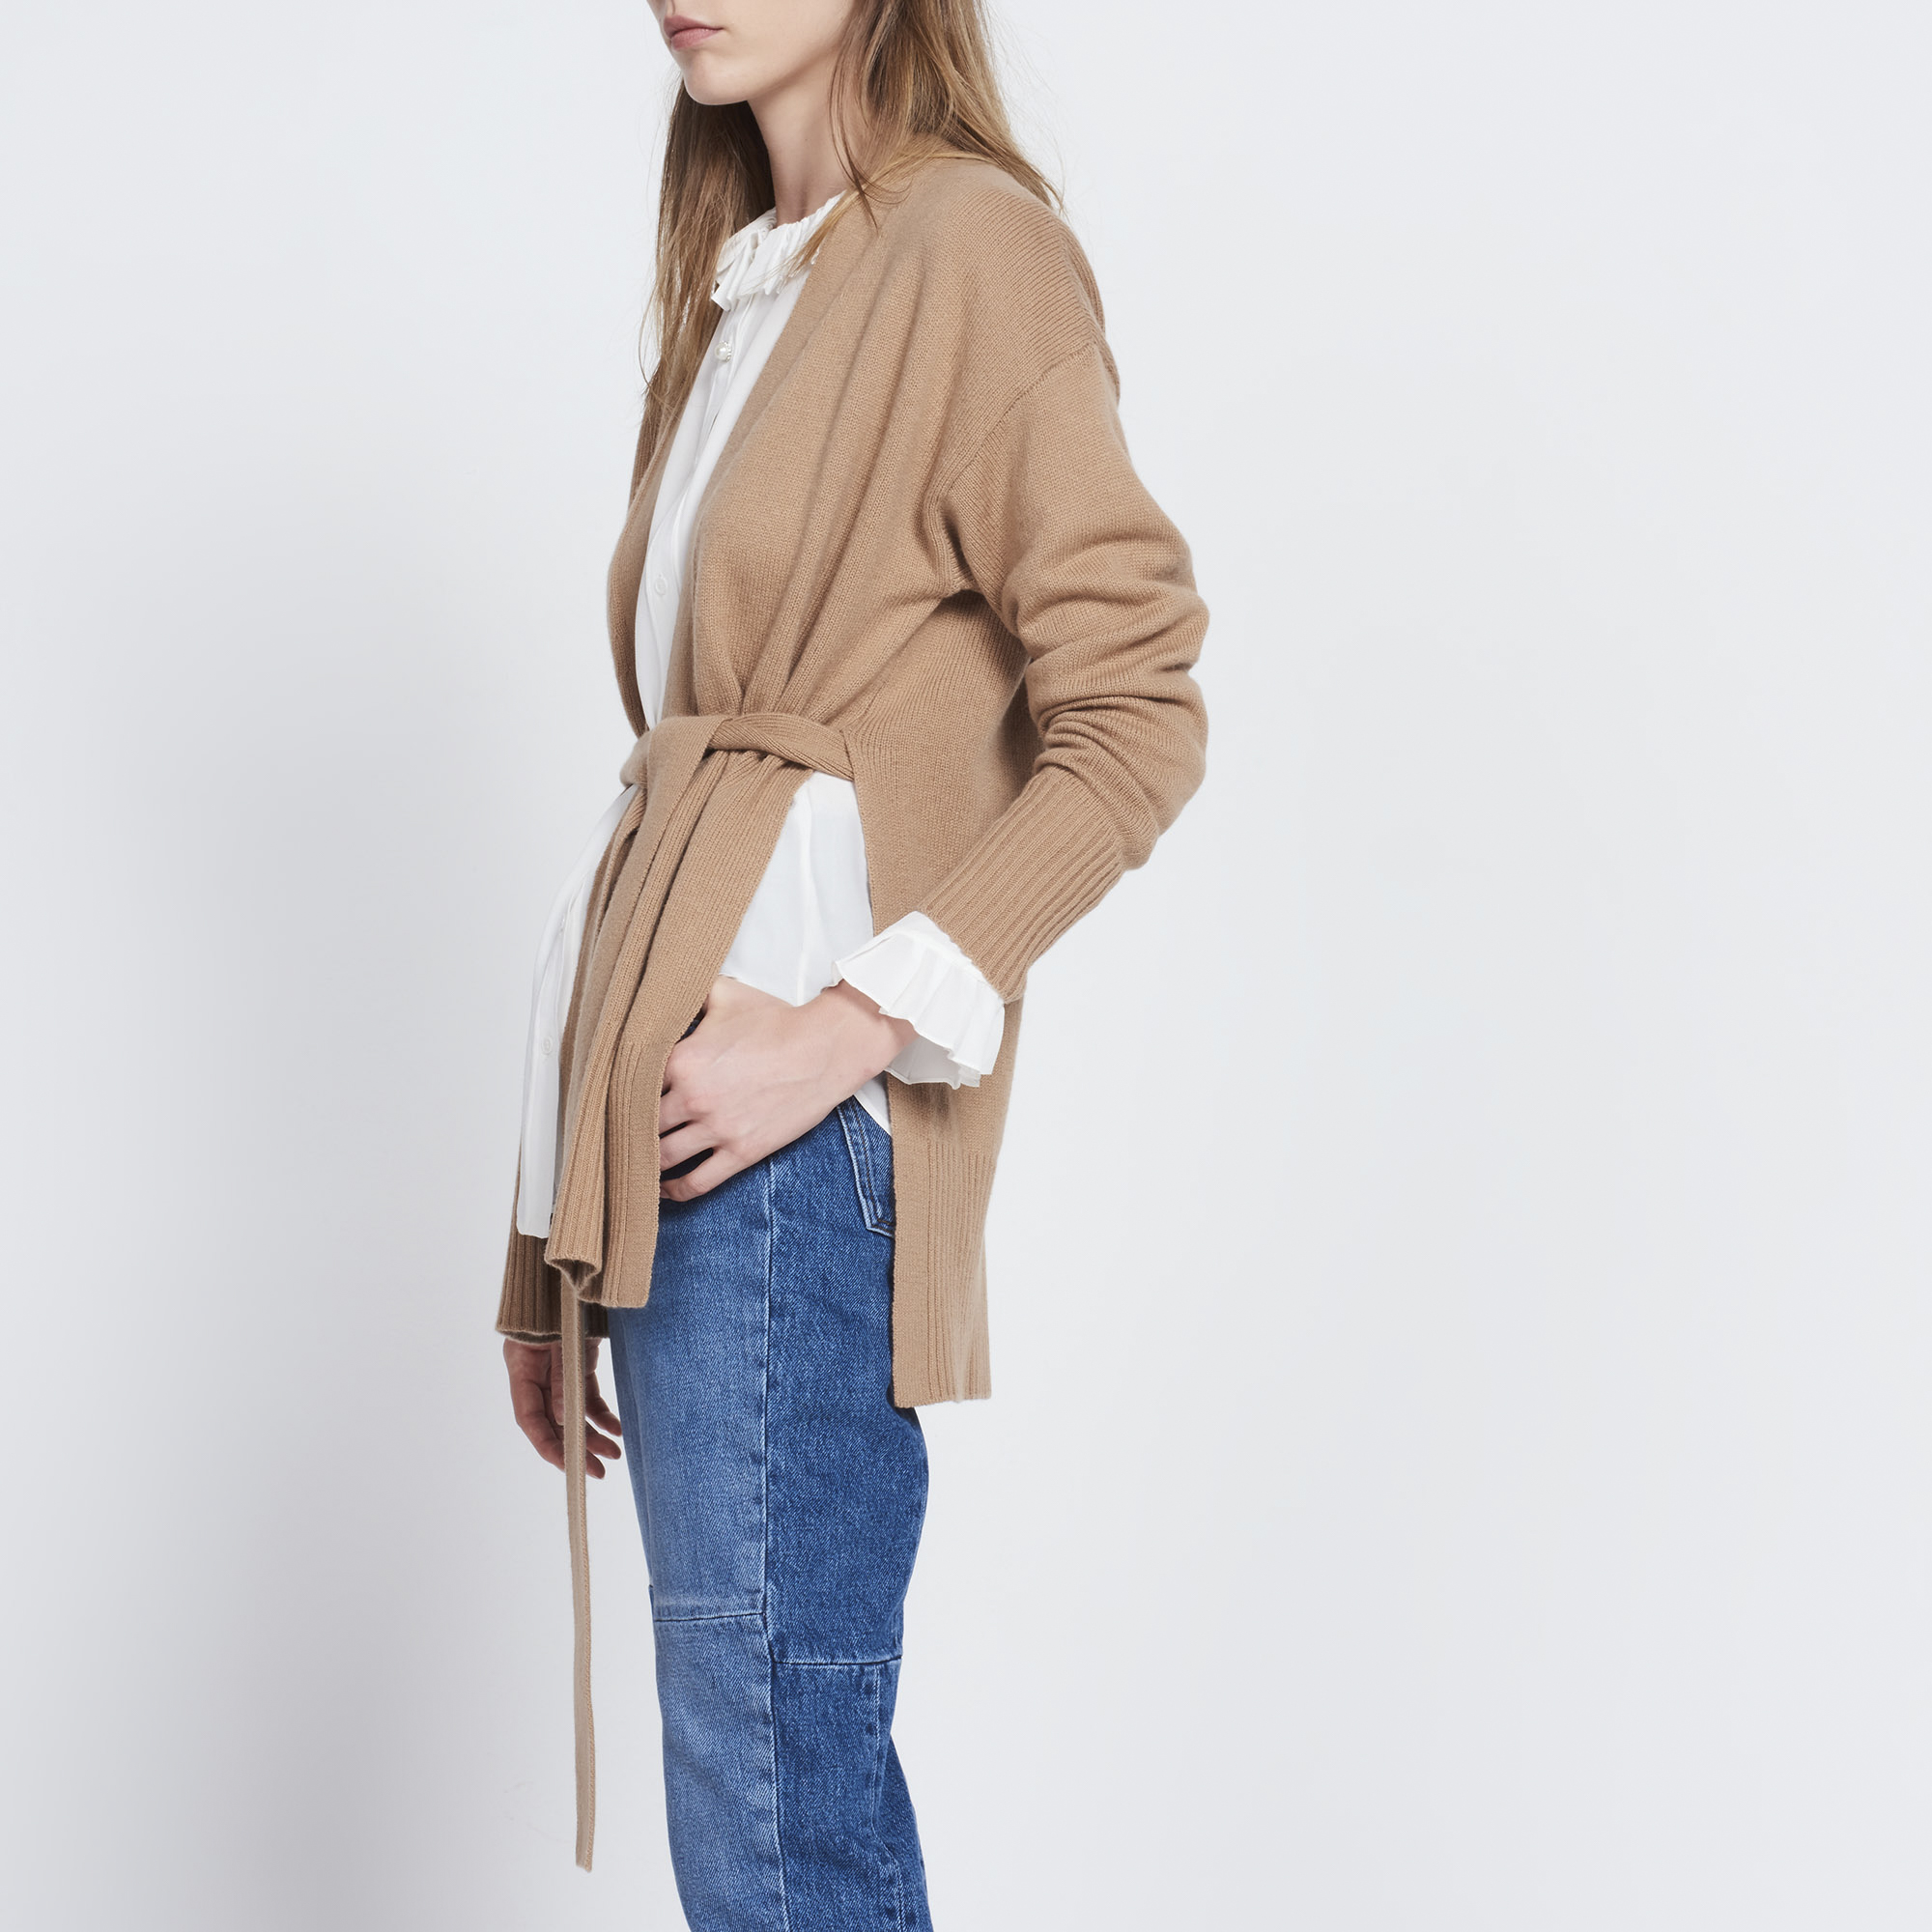 Slit wool and cashmere cardigan - Sweaters & Cardigans - Sandro ...